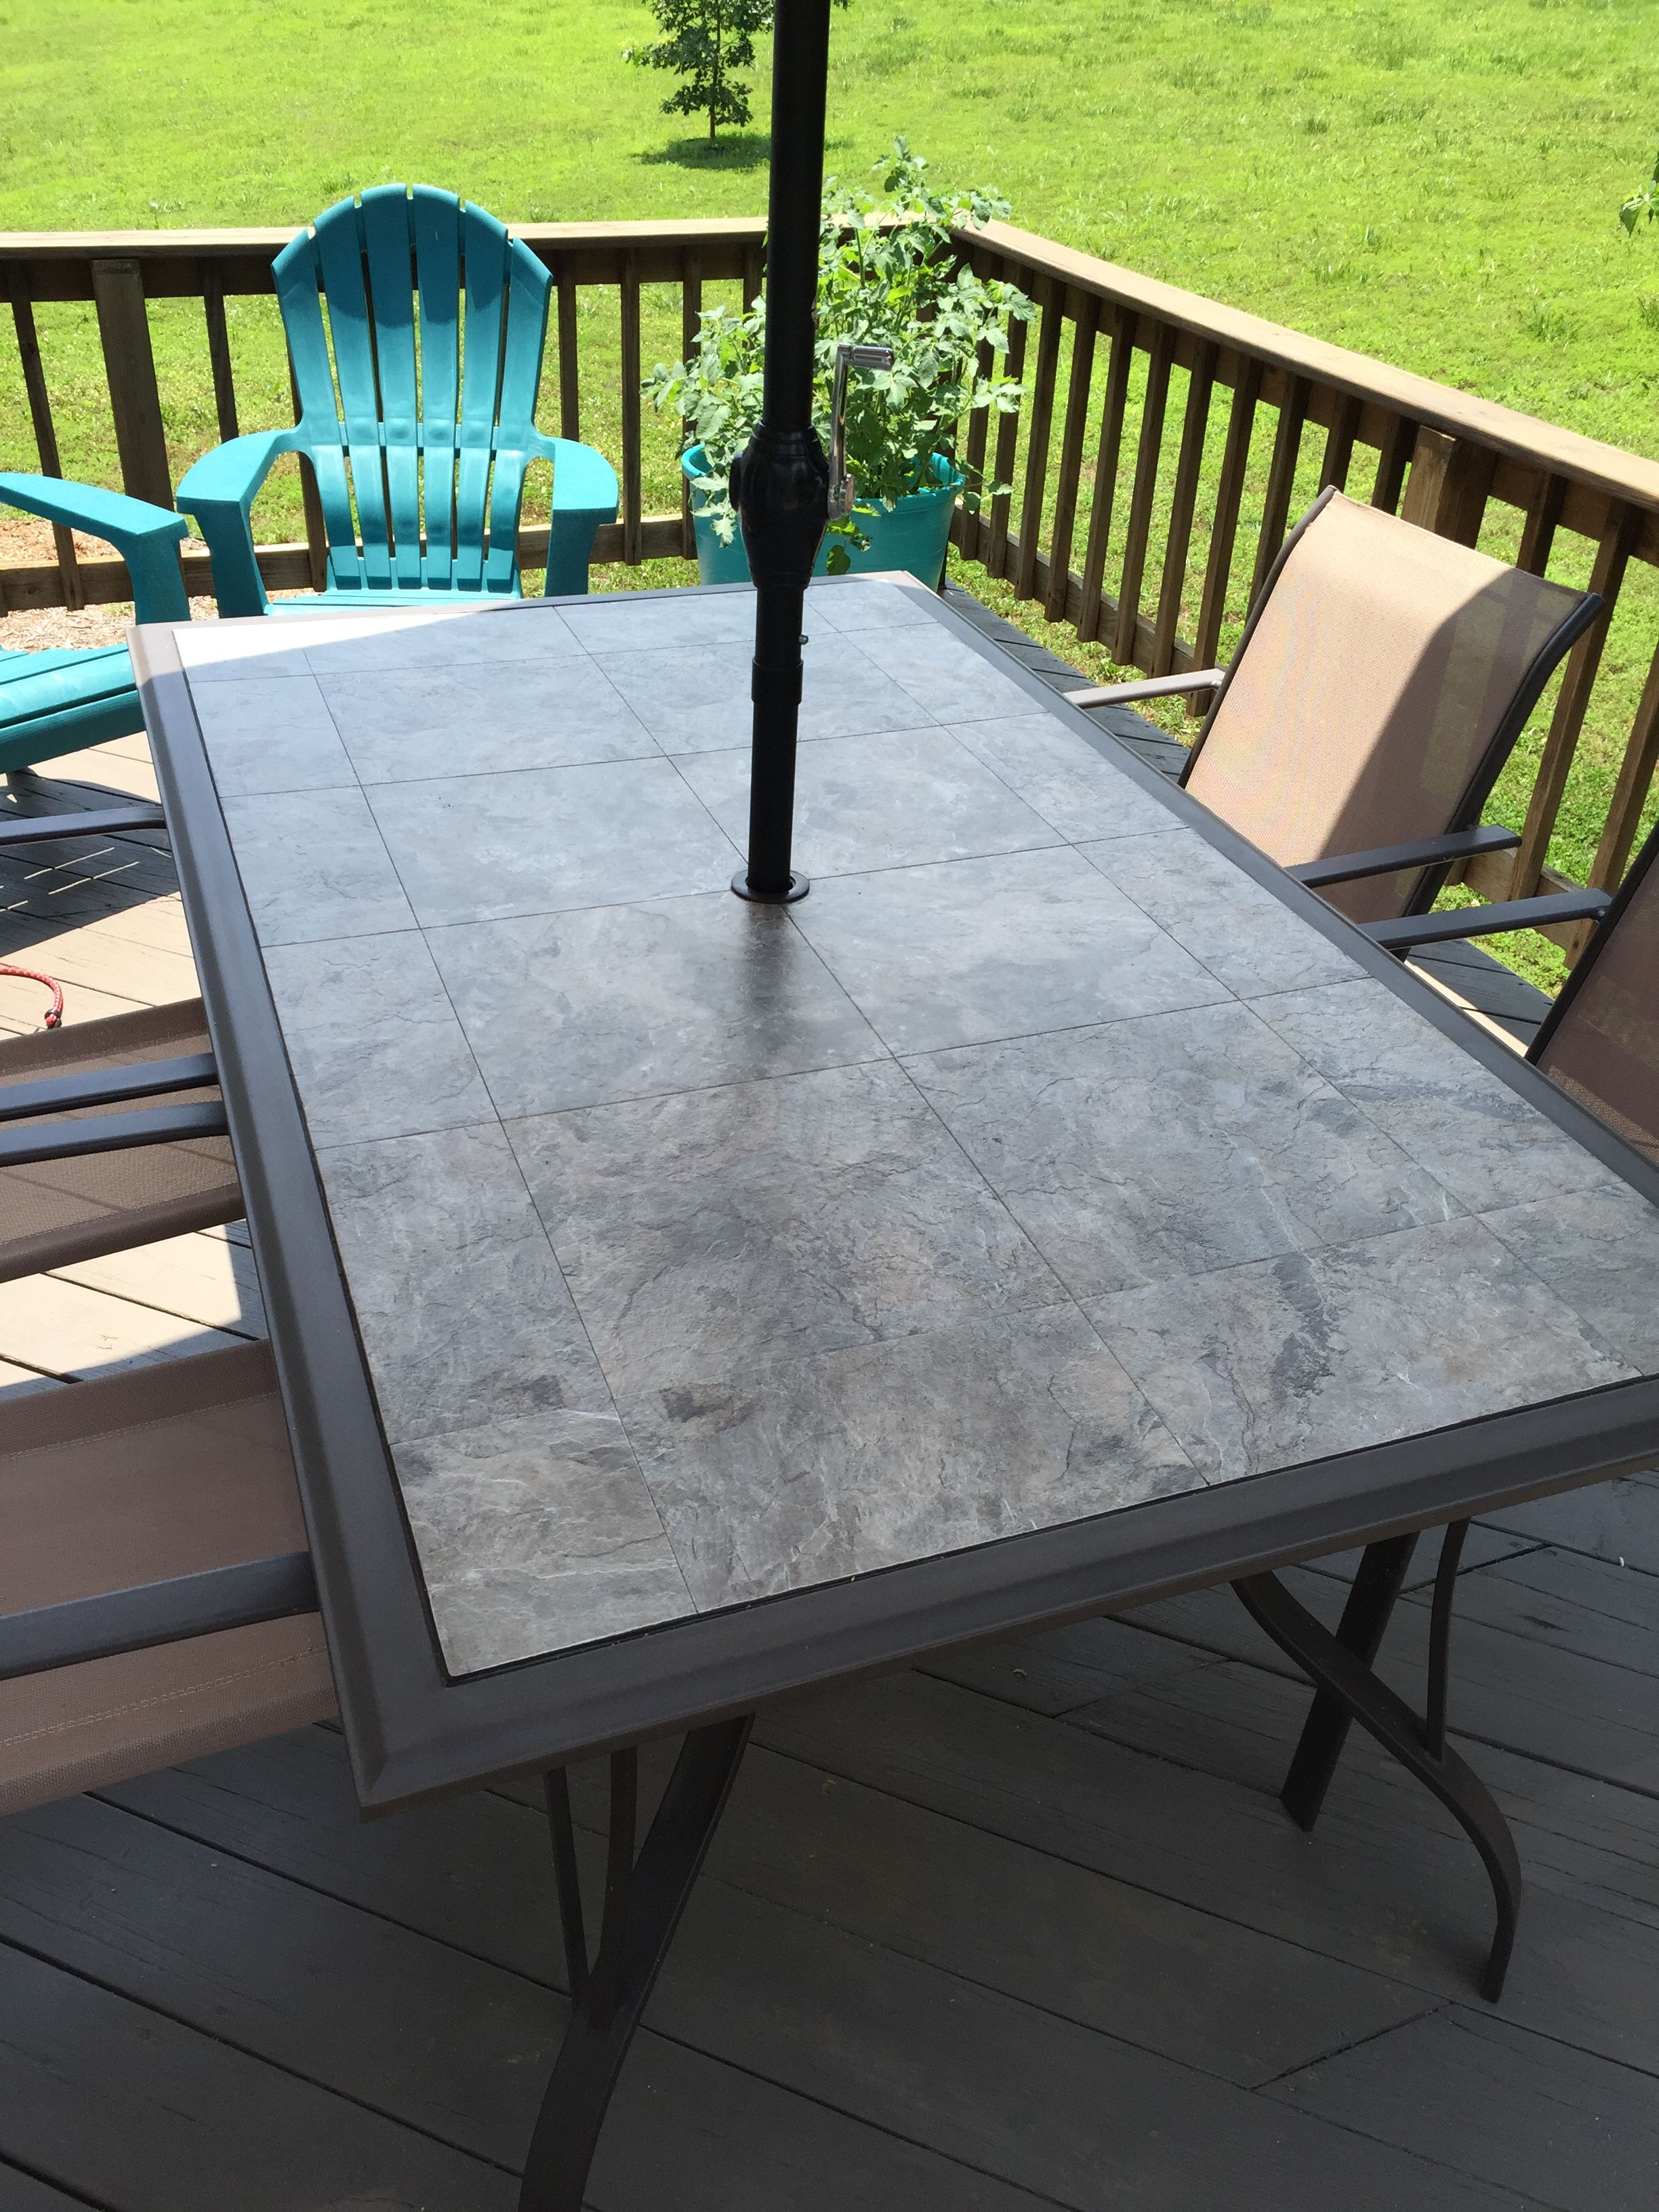 Glass Top Outdoor Table The Glass Table Top Shattered In 1 000 Pieces When The